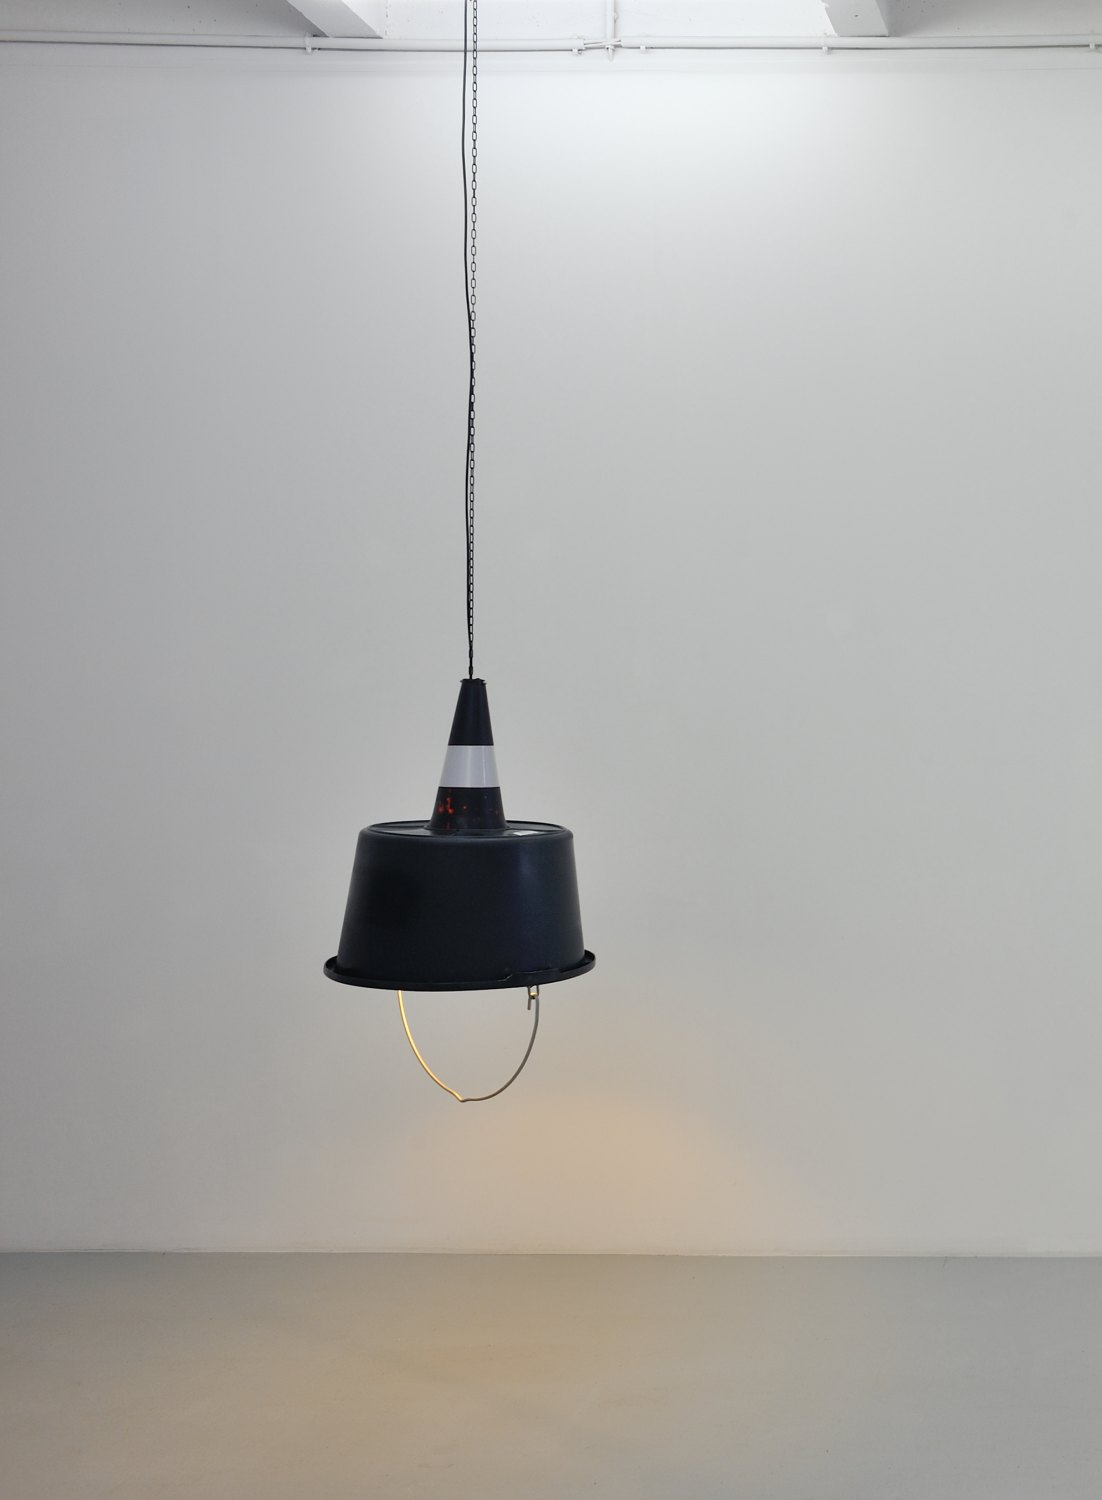 Klara Lidén Untitled (lamp, black), 2014 Lamp, plastic, 59 × 50 × 50 cm